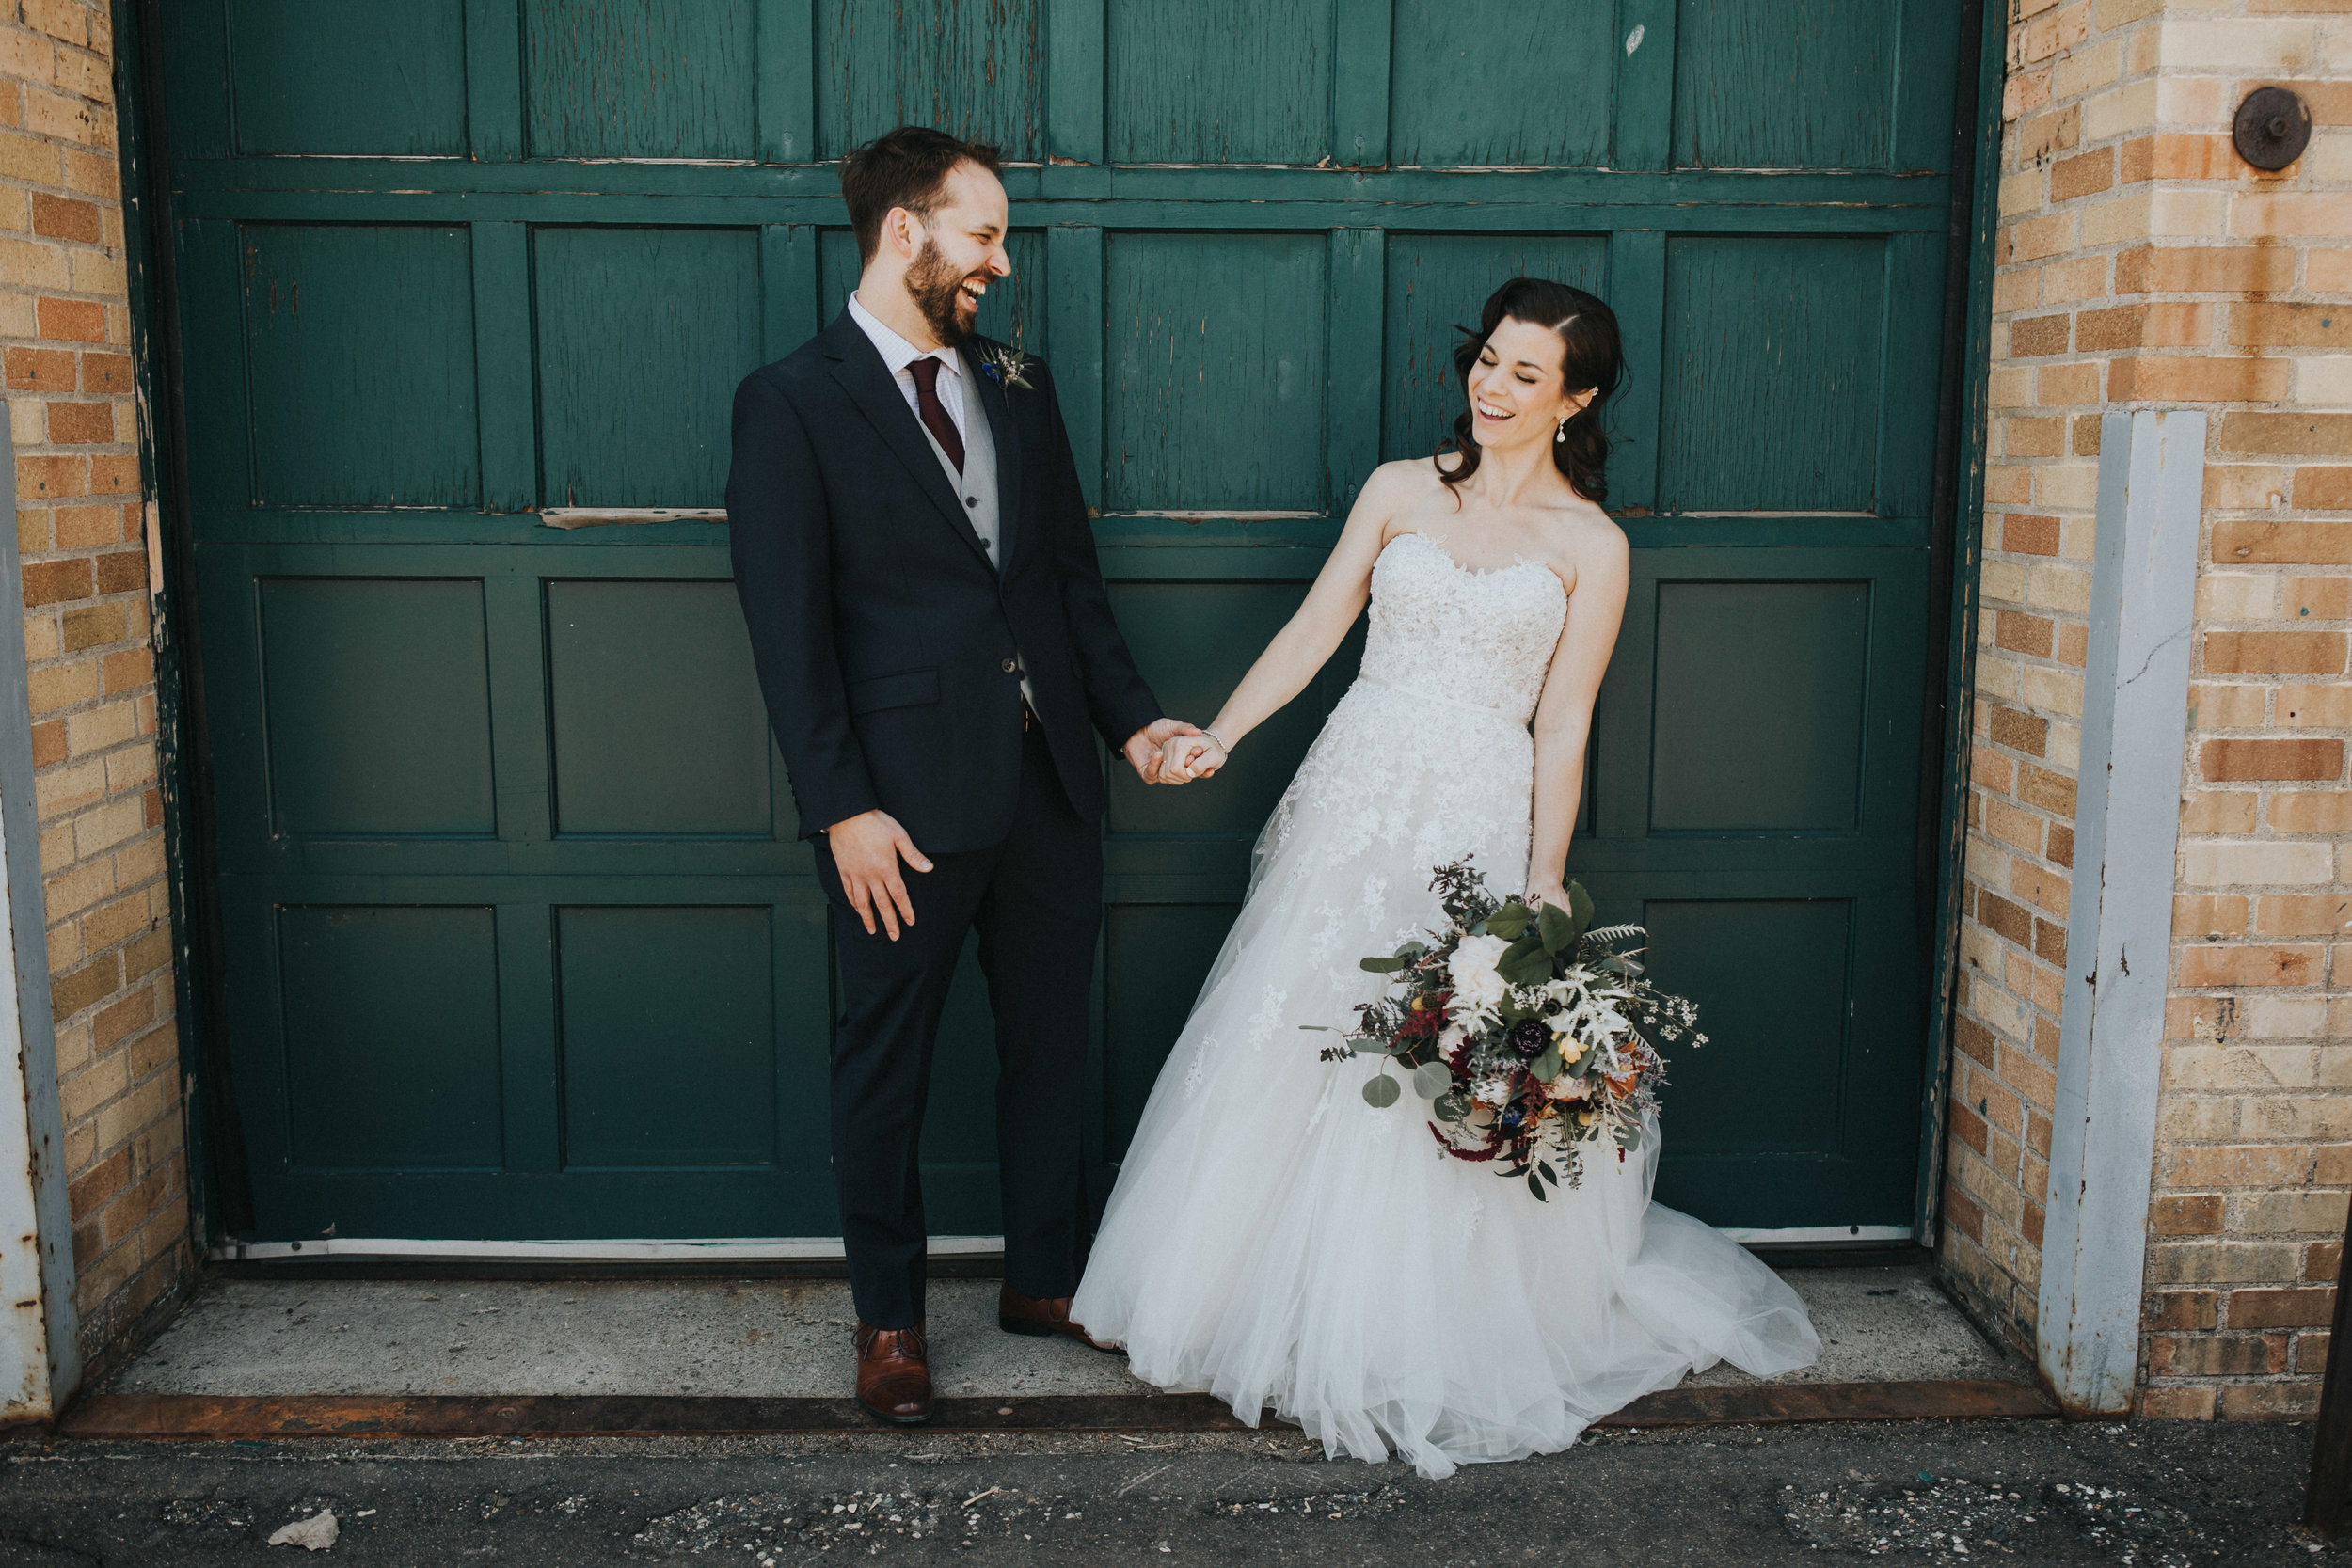 green door at Nicollet Island | laughing and holding hands | Russell Heeter Photography :: Minneapolis wedding planner Sixpence Events :: Nicollet Island Pavilion :: april wedding in Minnesota.jpg